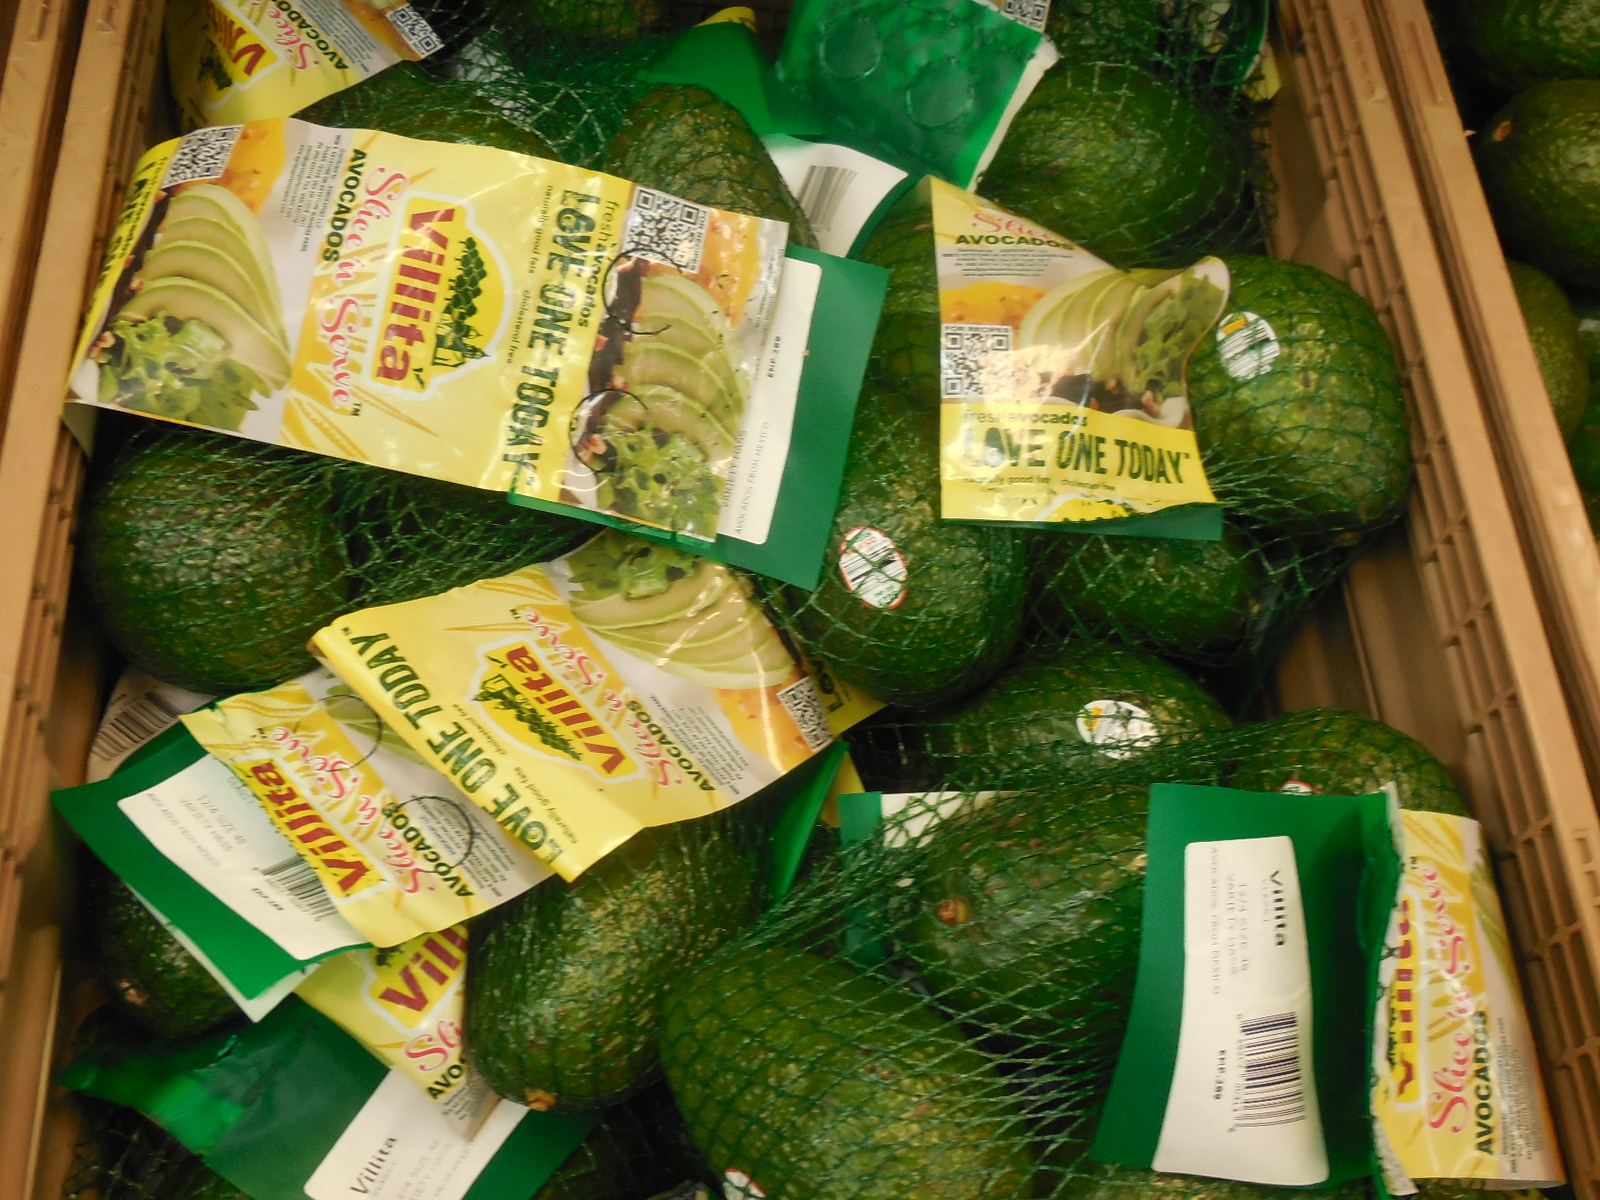 500 Million Avocados Sold at Retail During 2016 Avocado Holidays